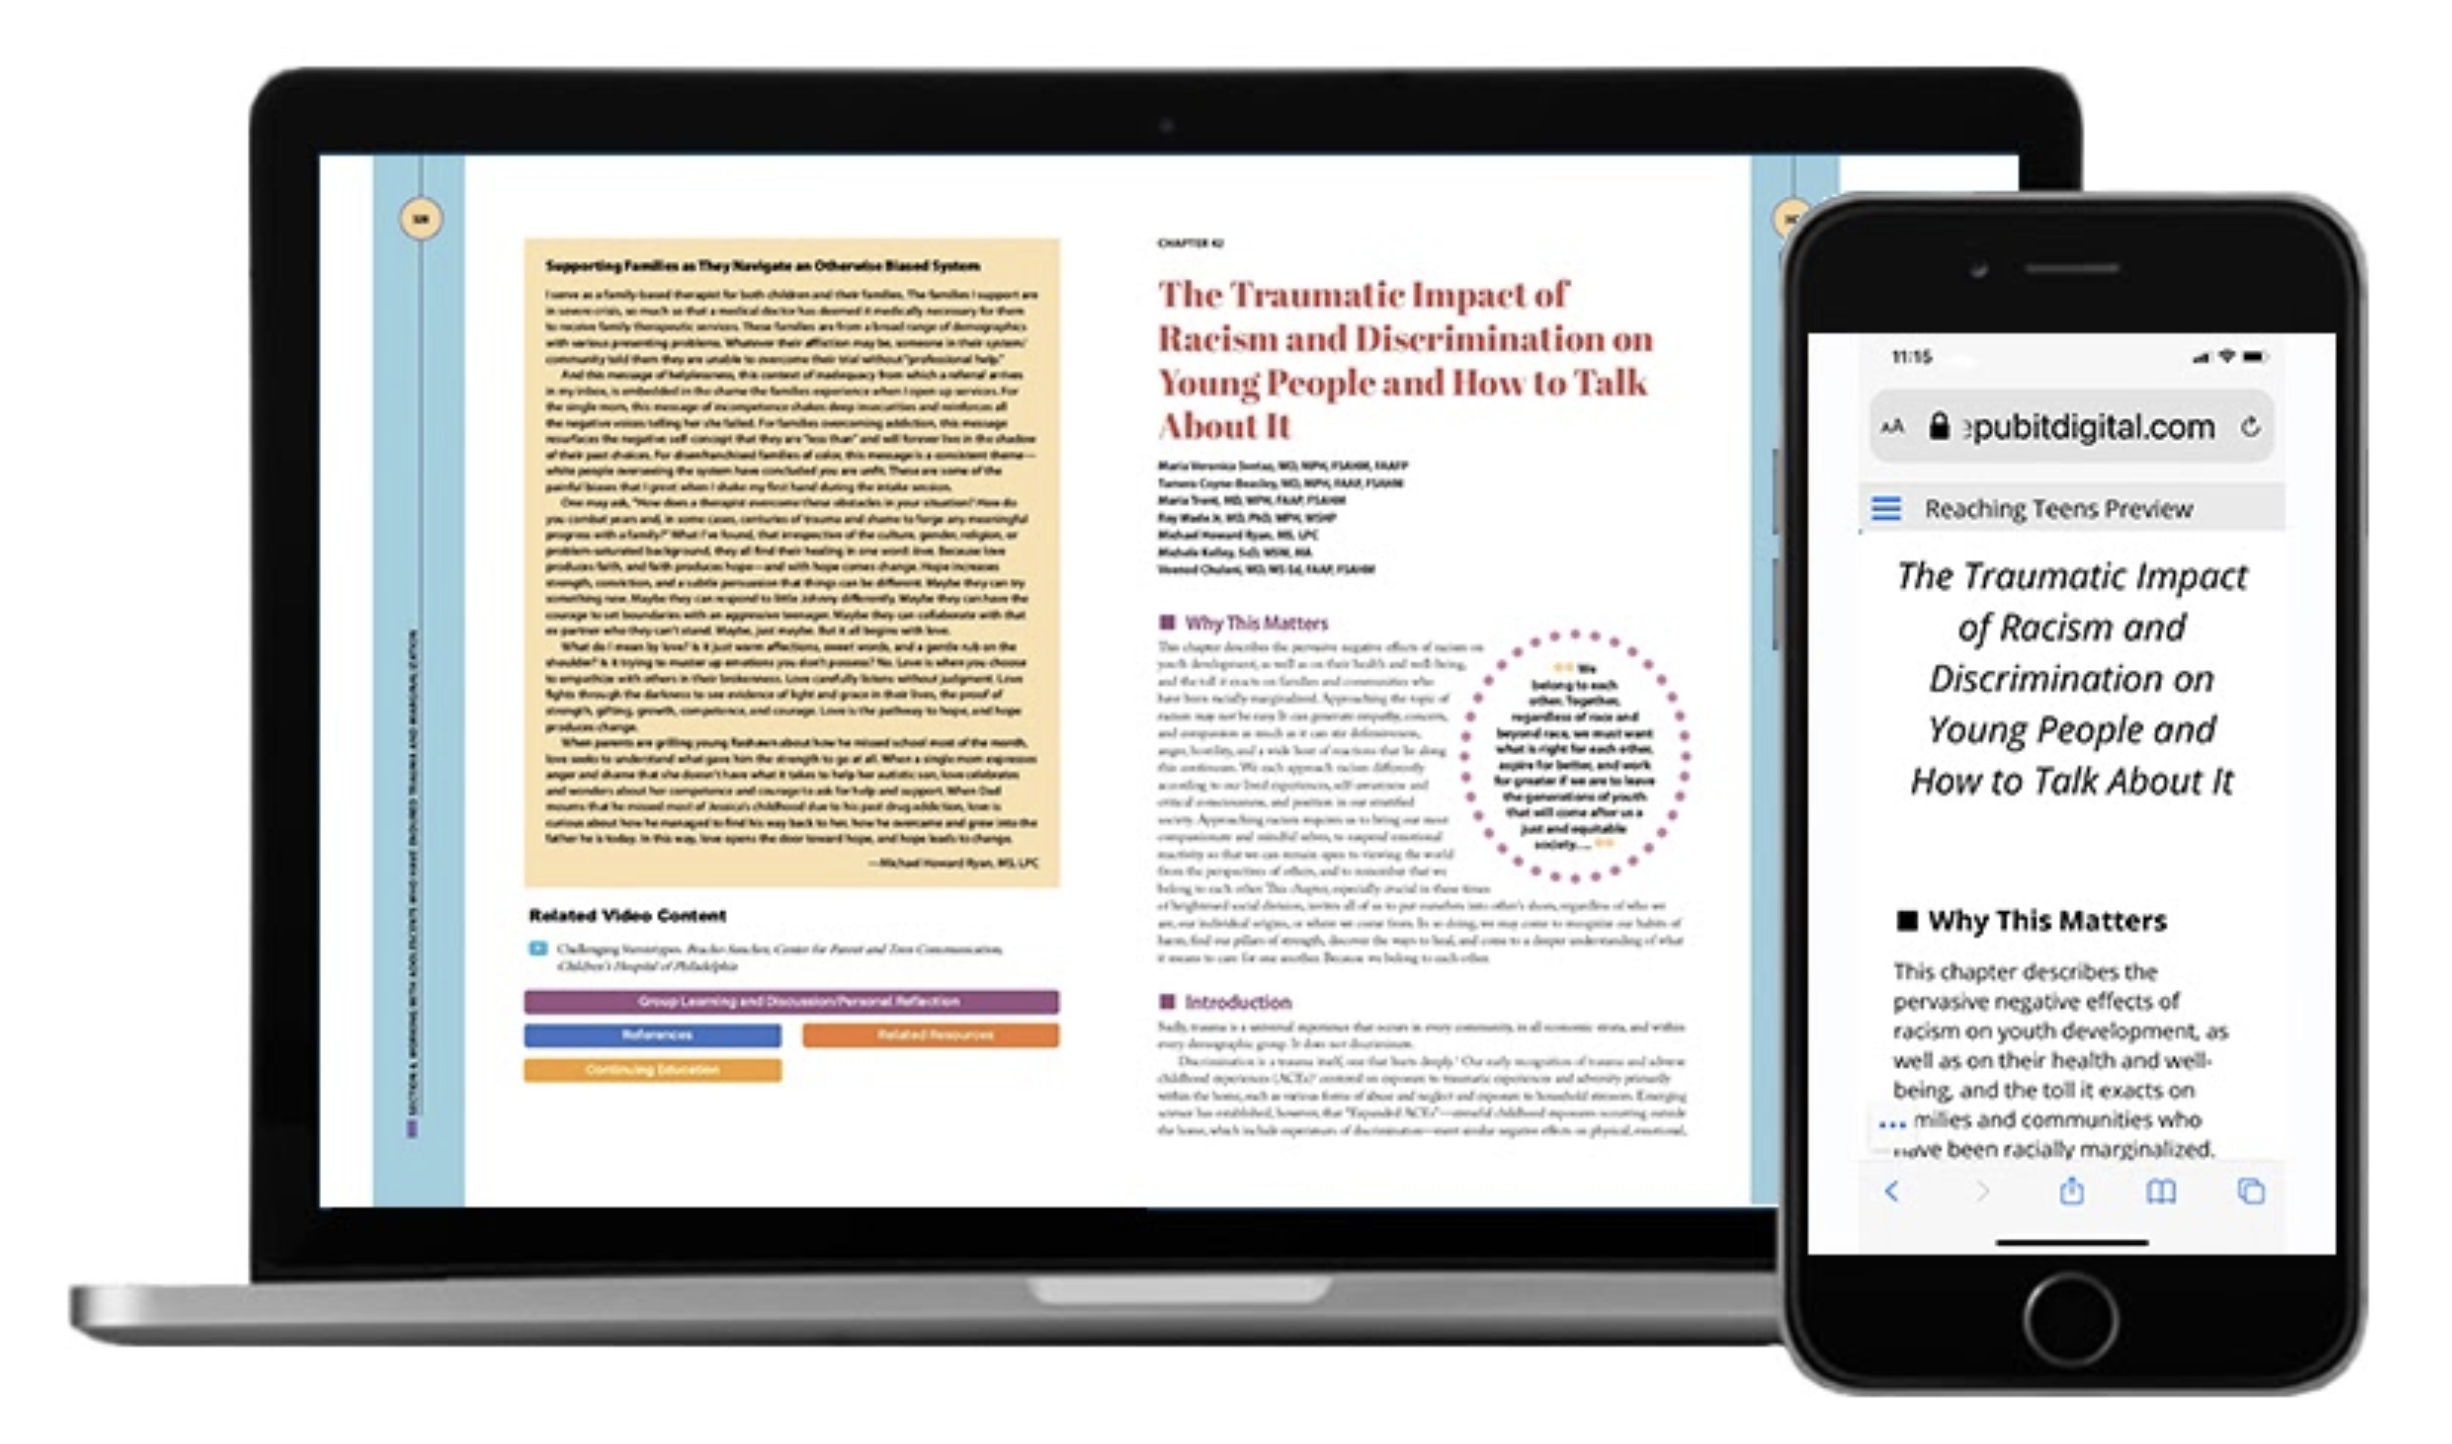 Image shows a highly stylized replica view of a textbook page with tinted text boxes, outlines, and fancy borders. The Responsive version of this same content does not need all of the visual appealing graphical treatments. It contains images, text, titles and headers with proper formatting.